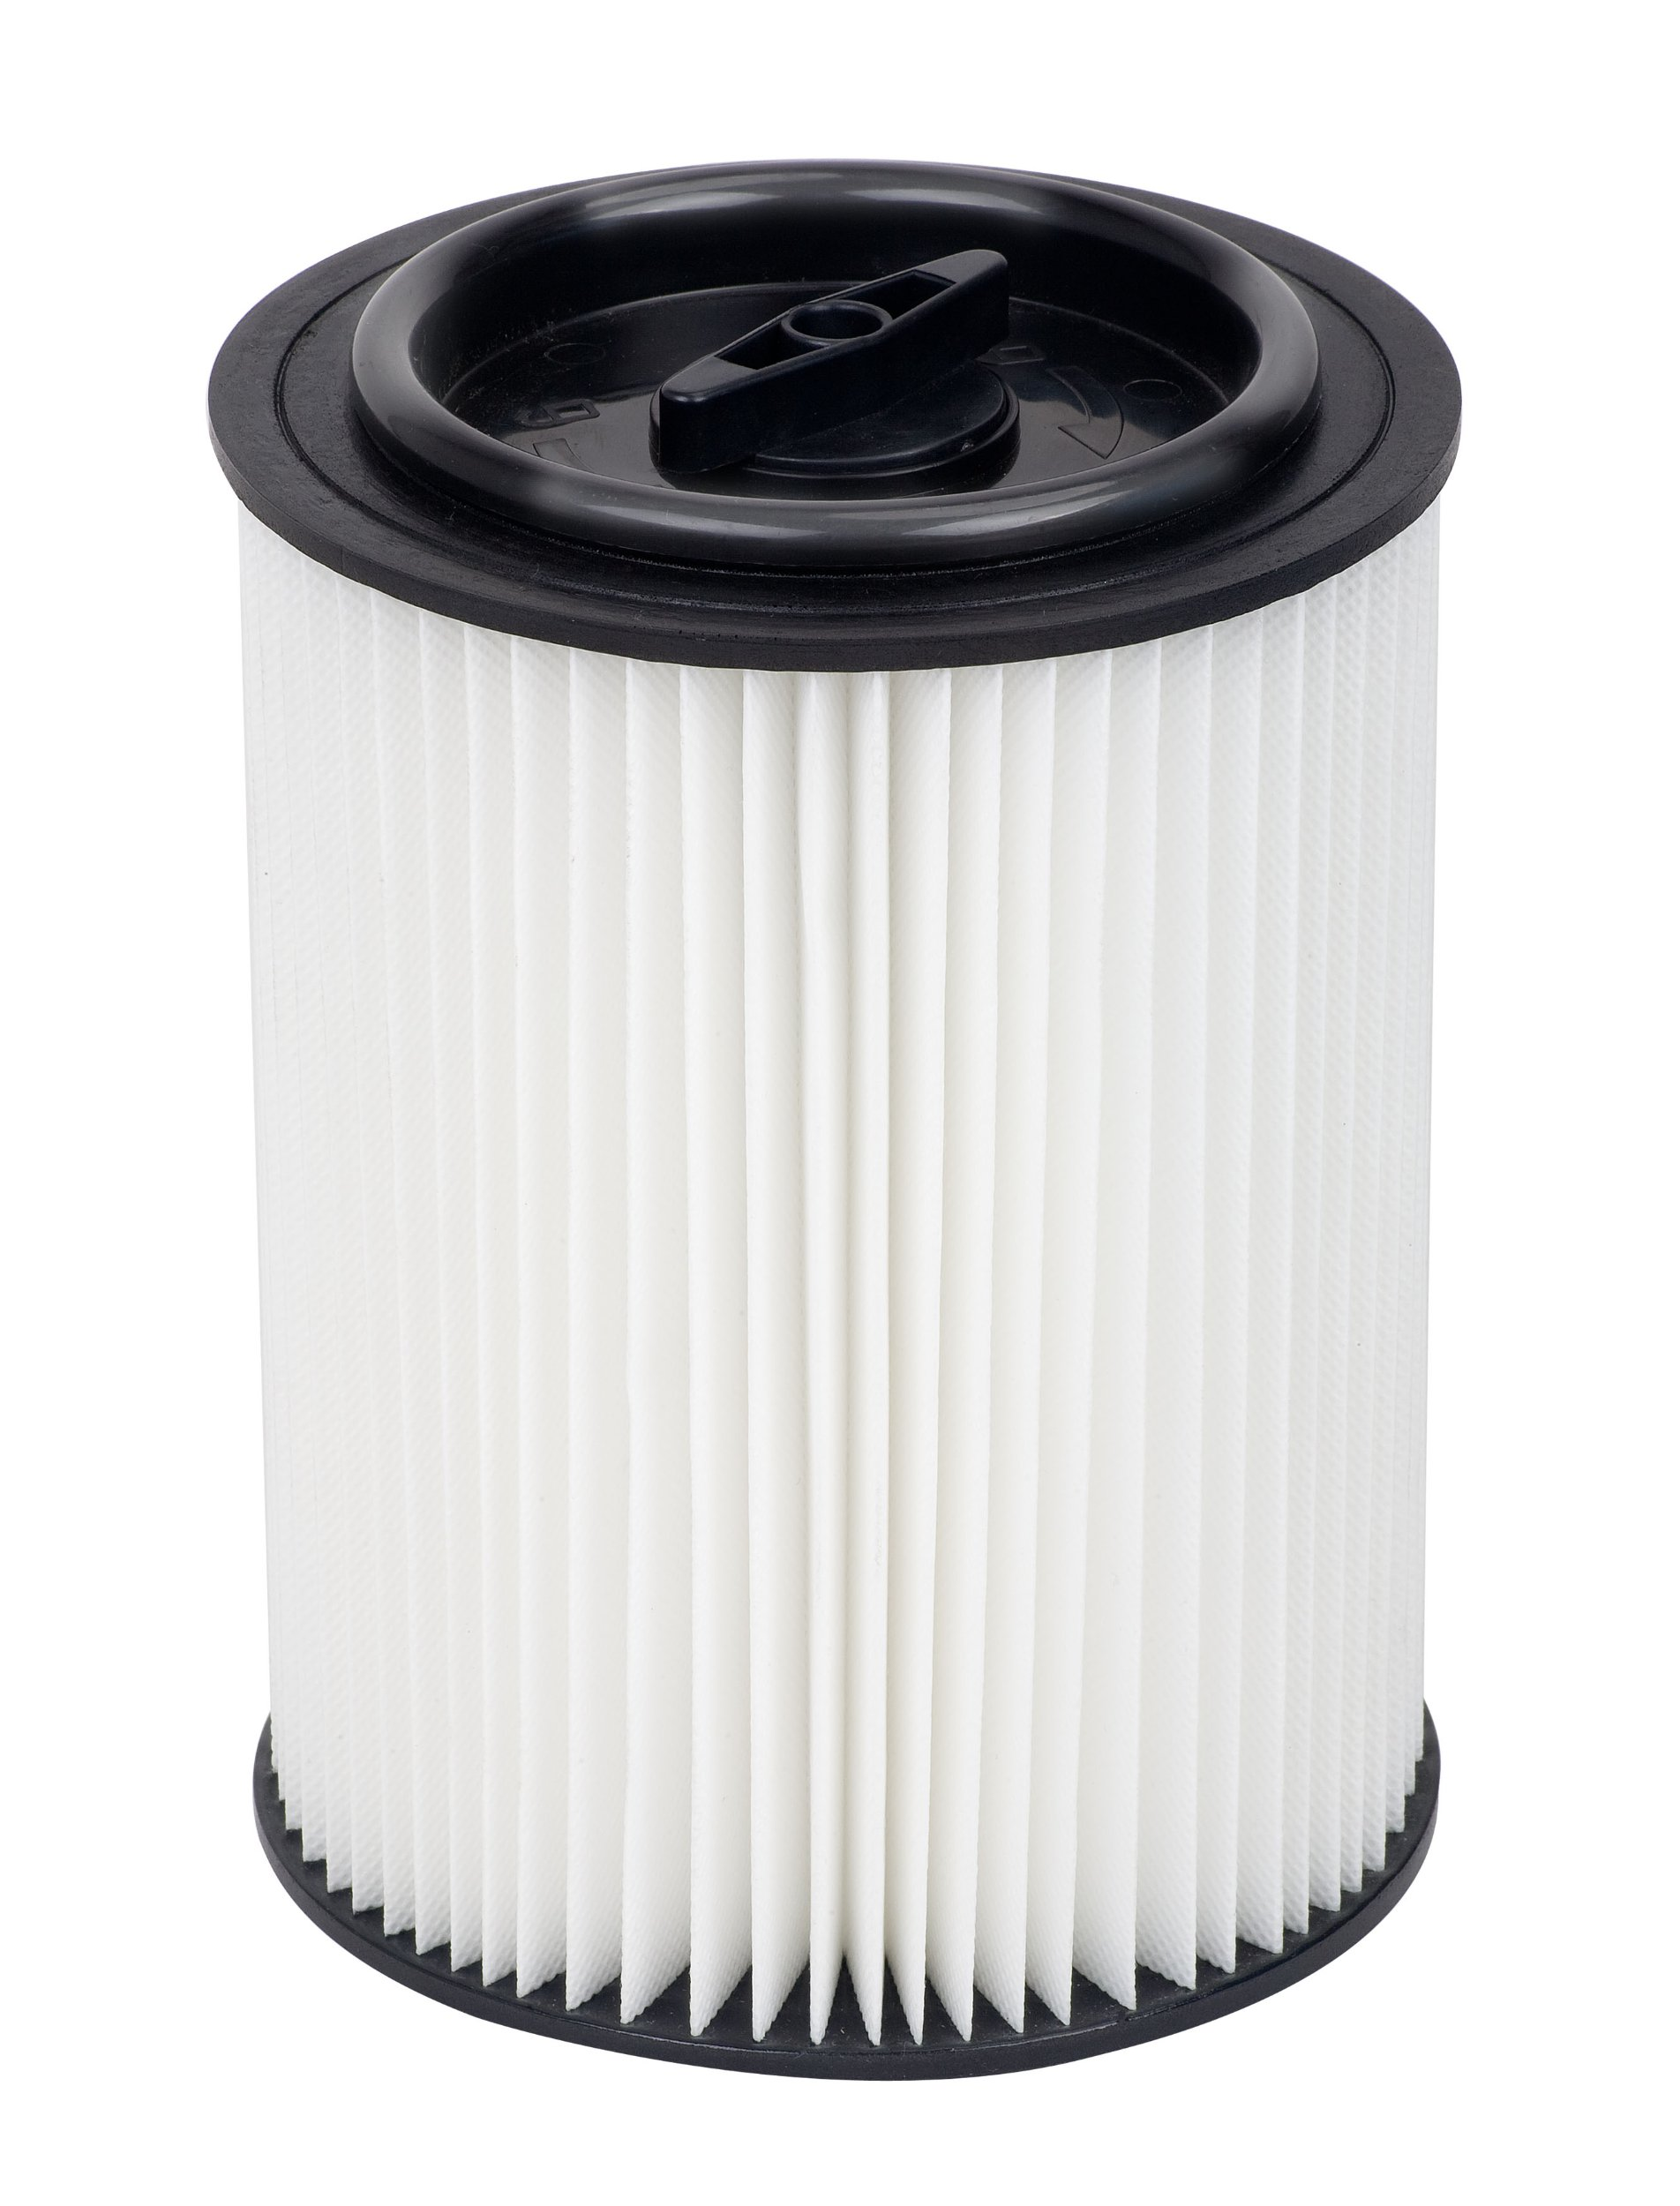 Vacmaster Washable Cartridge Filter for Wall Mountable Vac, VWCF by Vacmaster